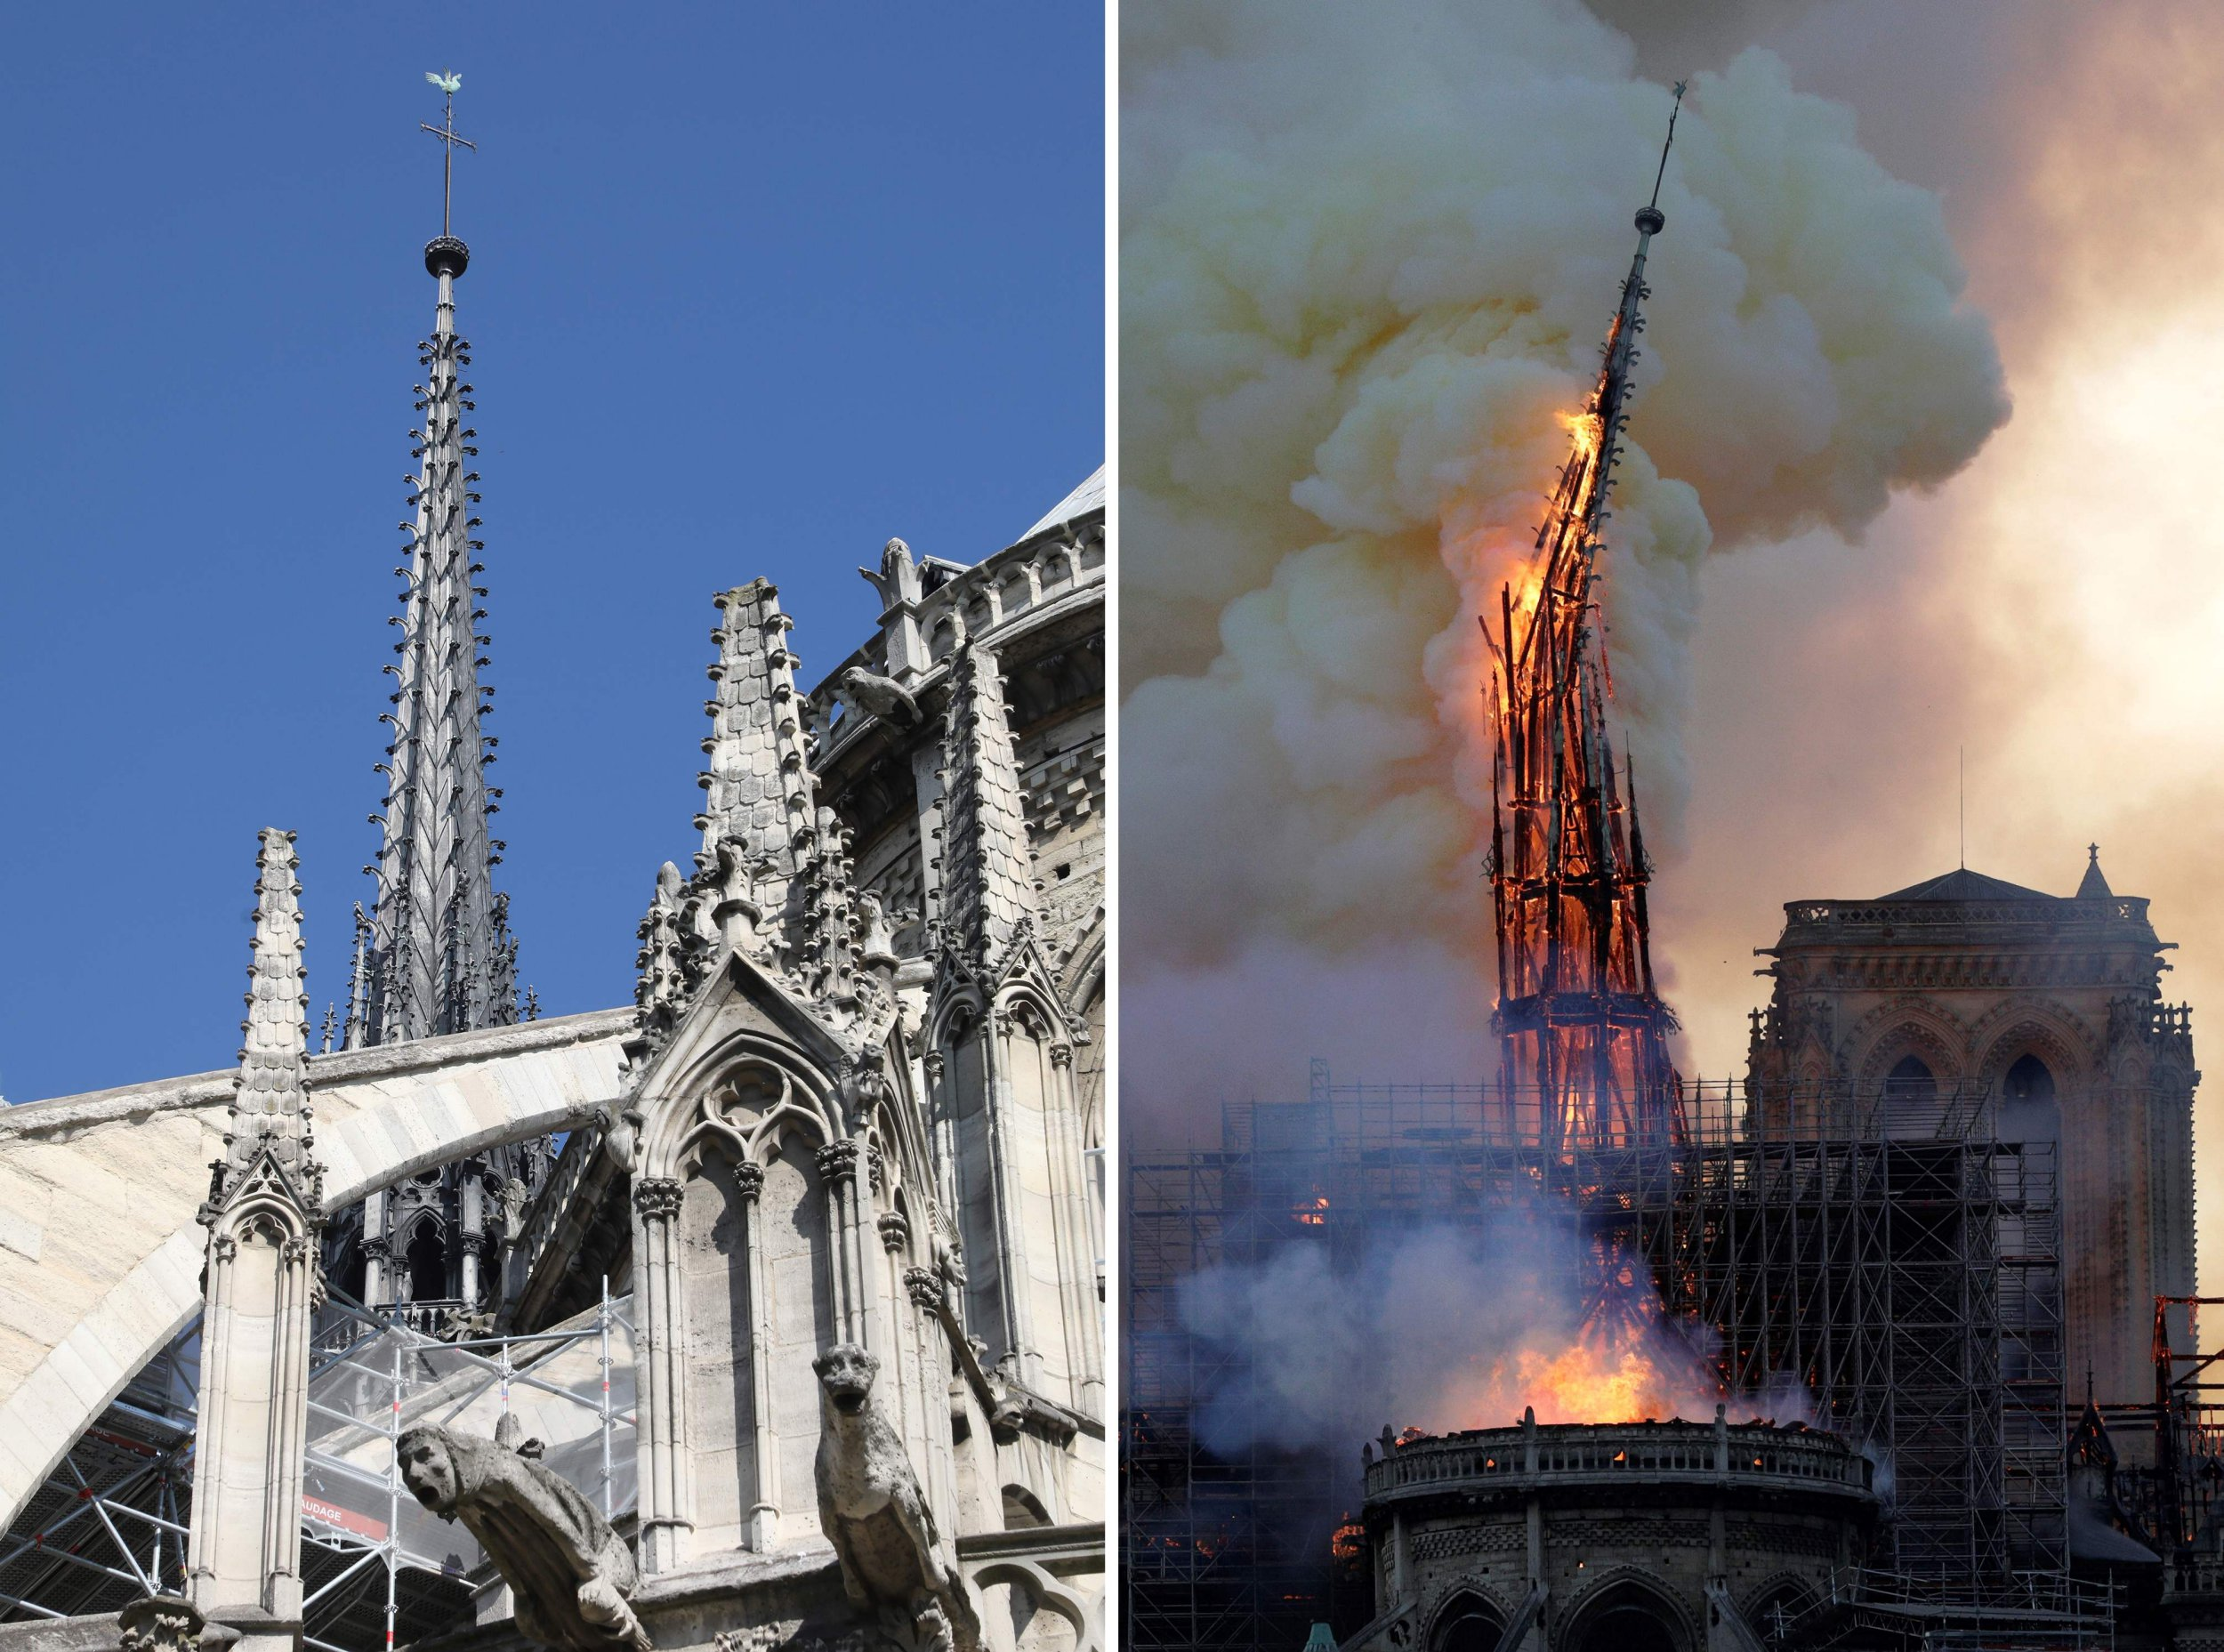 Two pictures showing the spire on top of Notre-Dame de Paris Cathedral before the fire on the left, and it collpasing during the fire on the right.